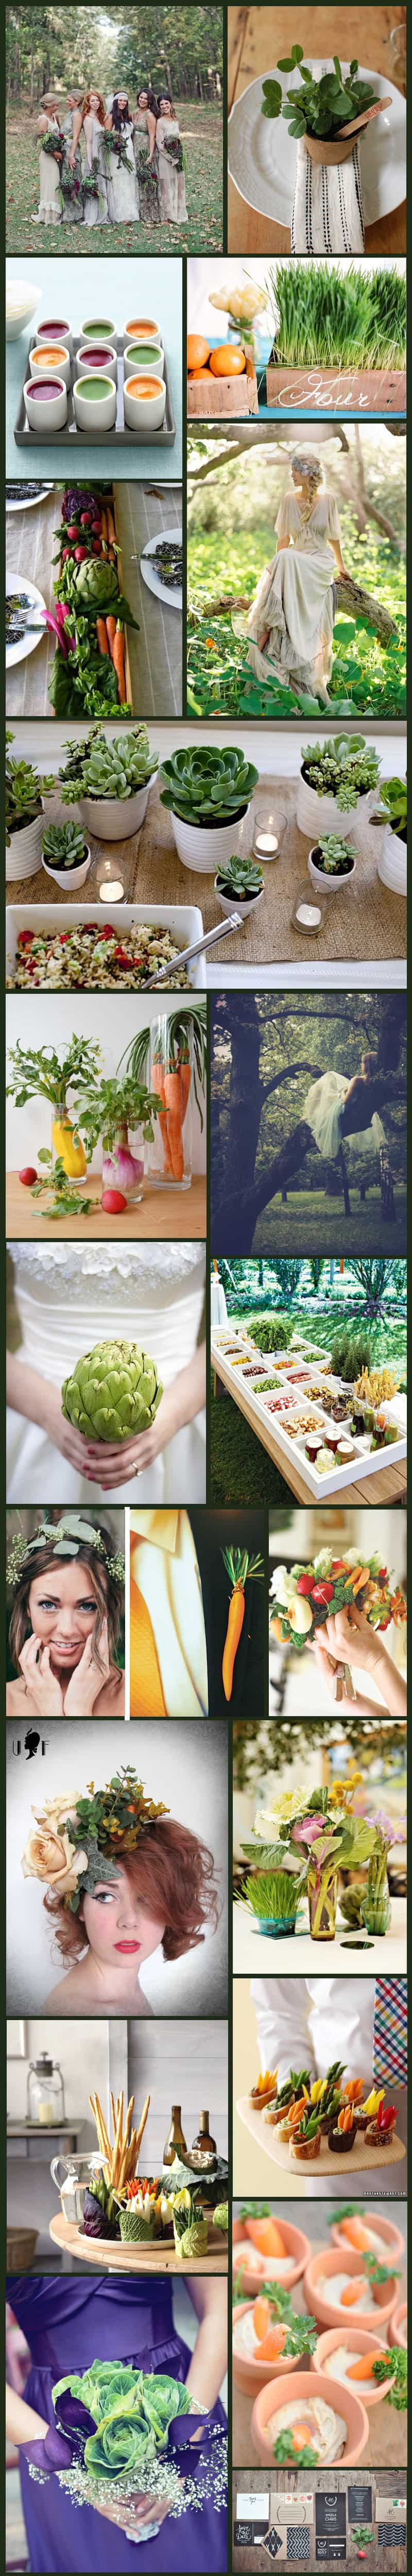 Earth Vegetable Garden Inspiration Board